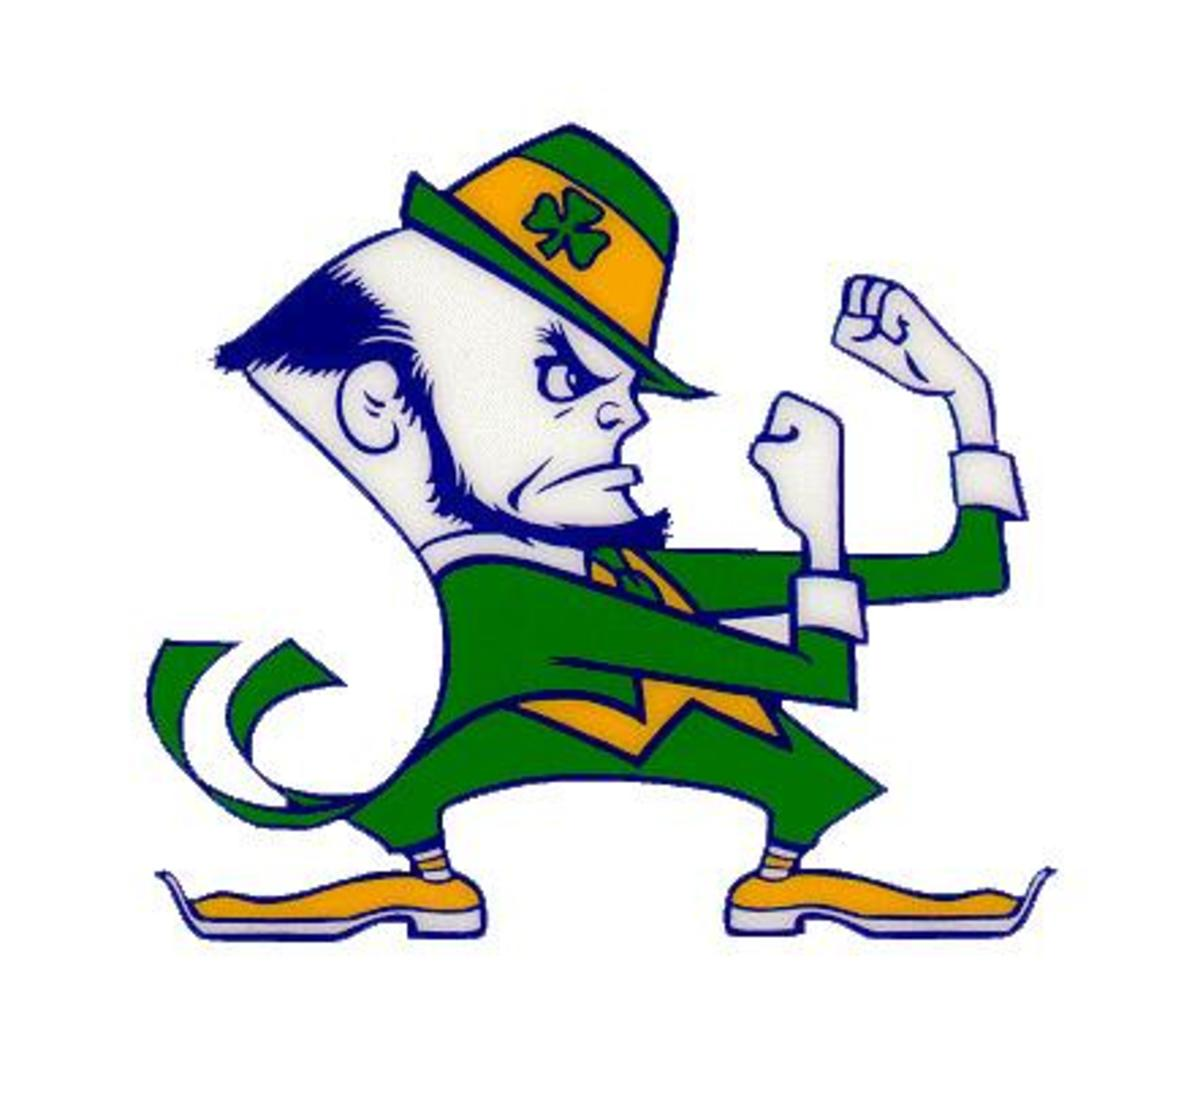 The Notre Dame Fighting Irish mascot